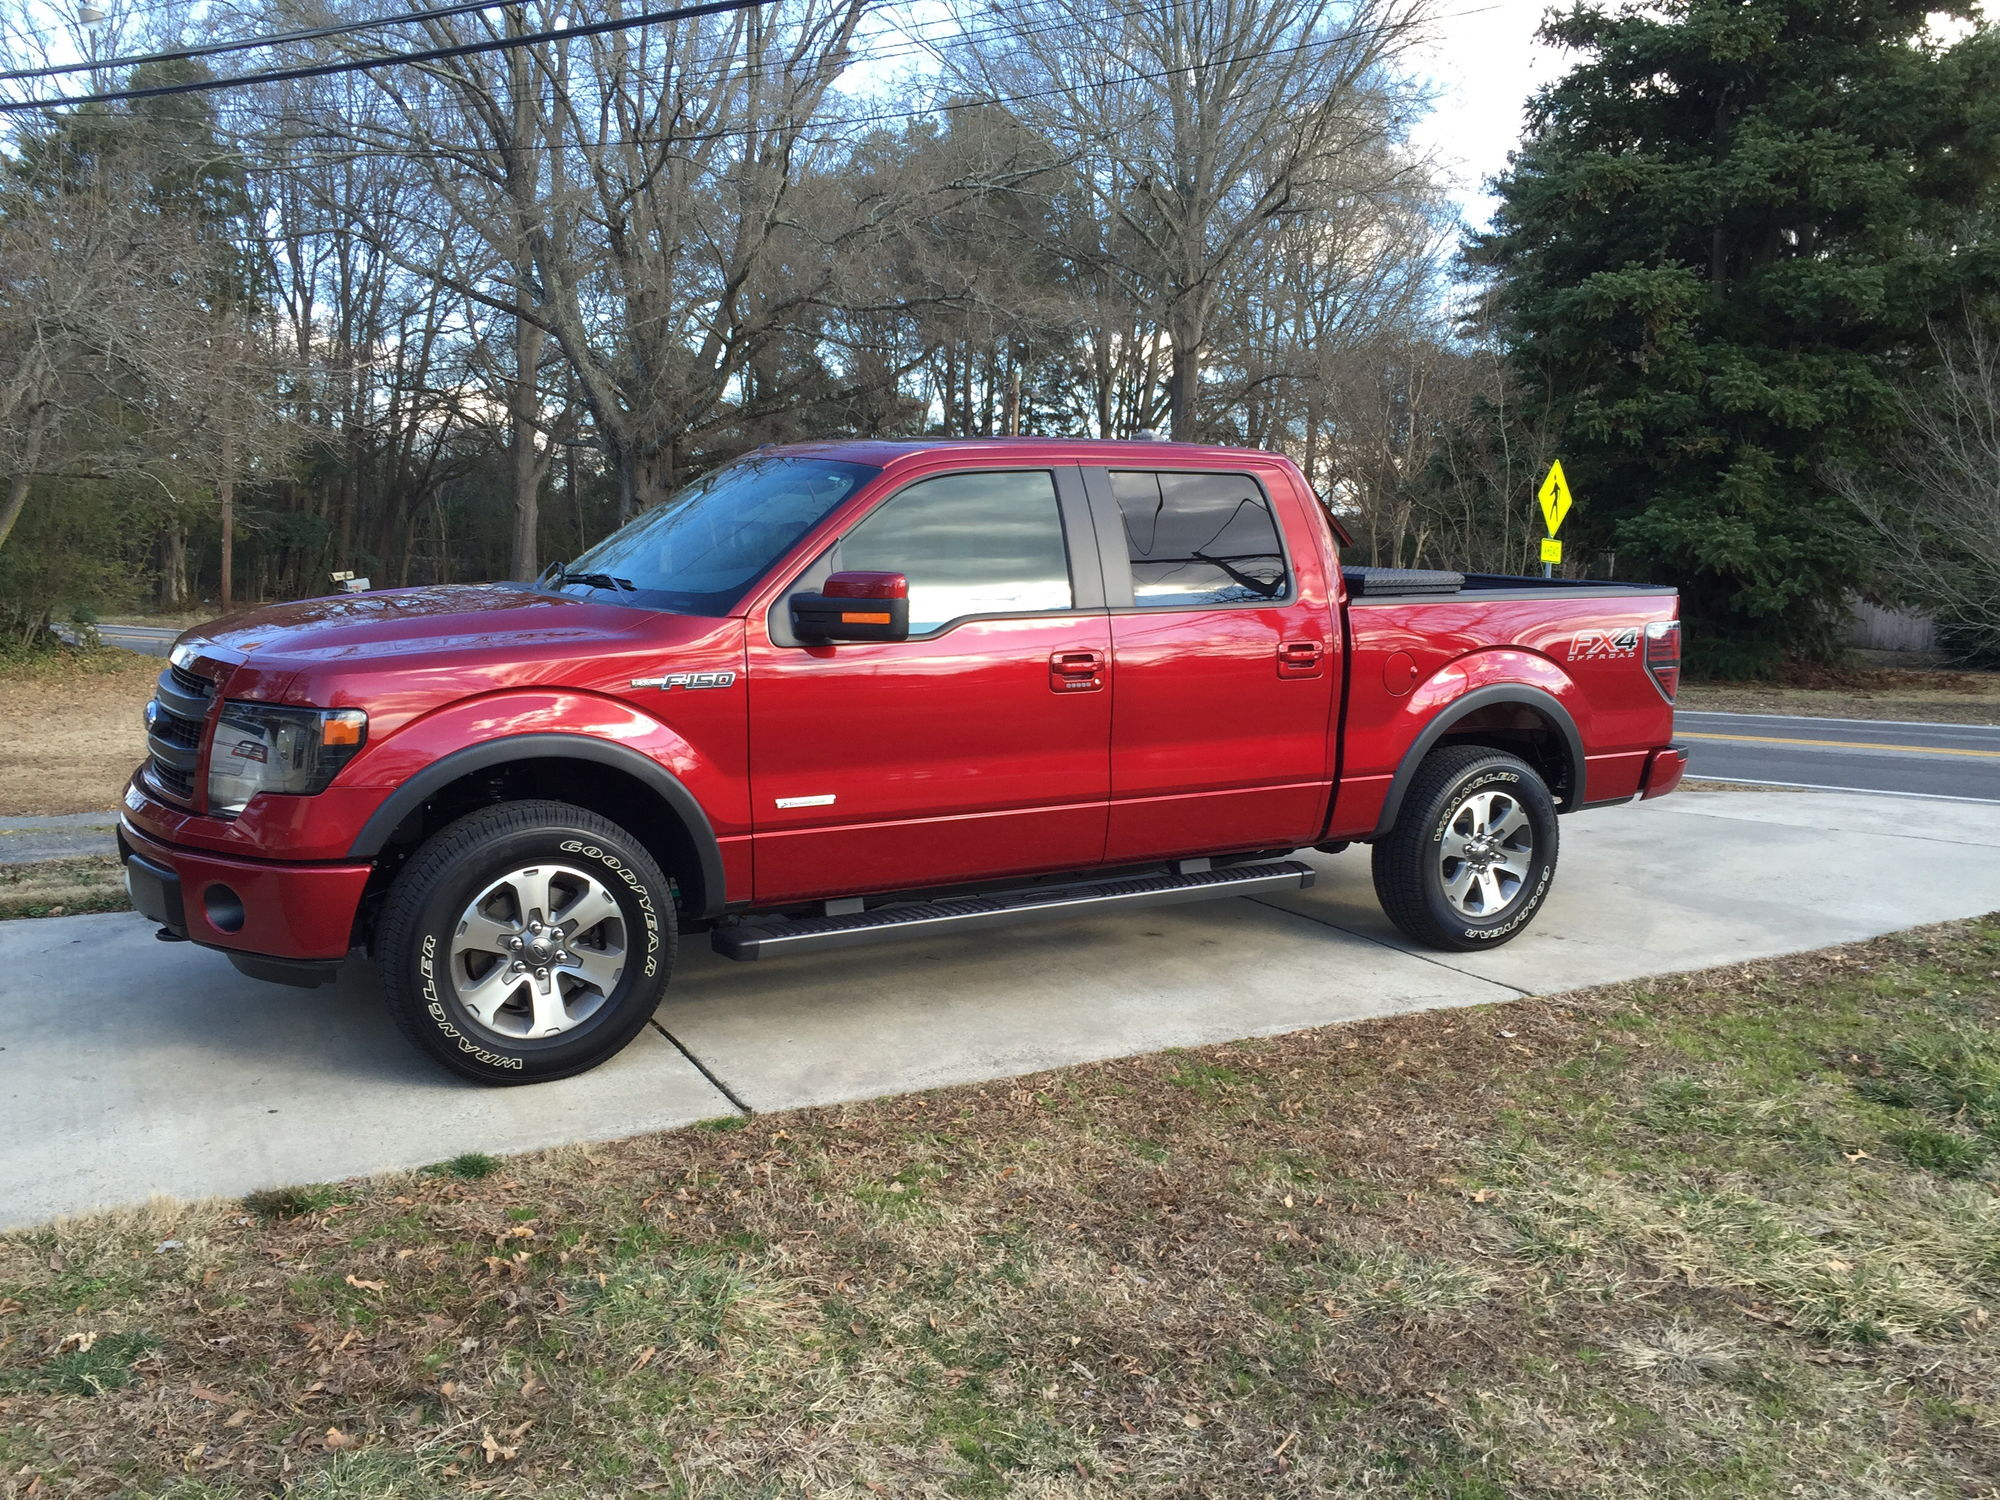 2015 F150 Forum >> New Member / 2014 FX4 Eco-Boost Supercrew - Ford F150 Forum - Community of Ford Truck Fans